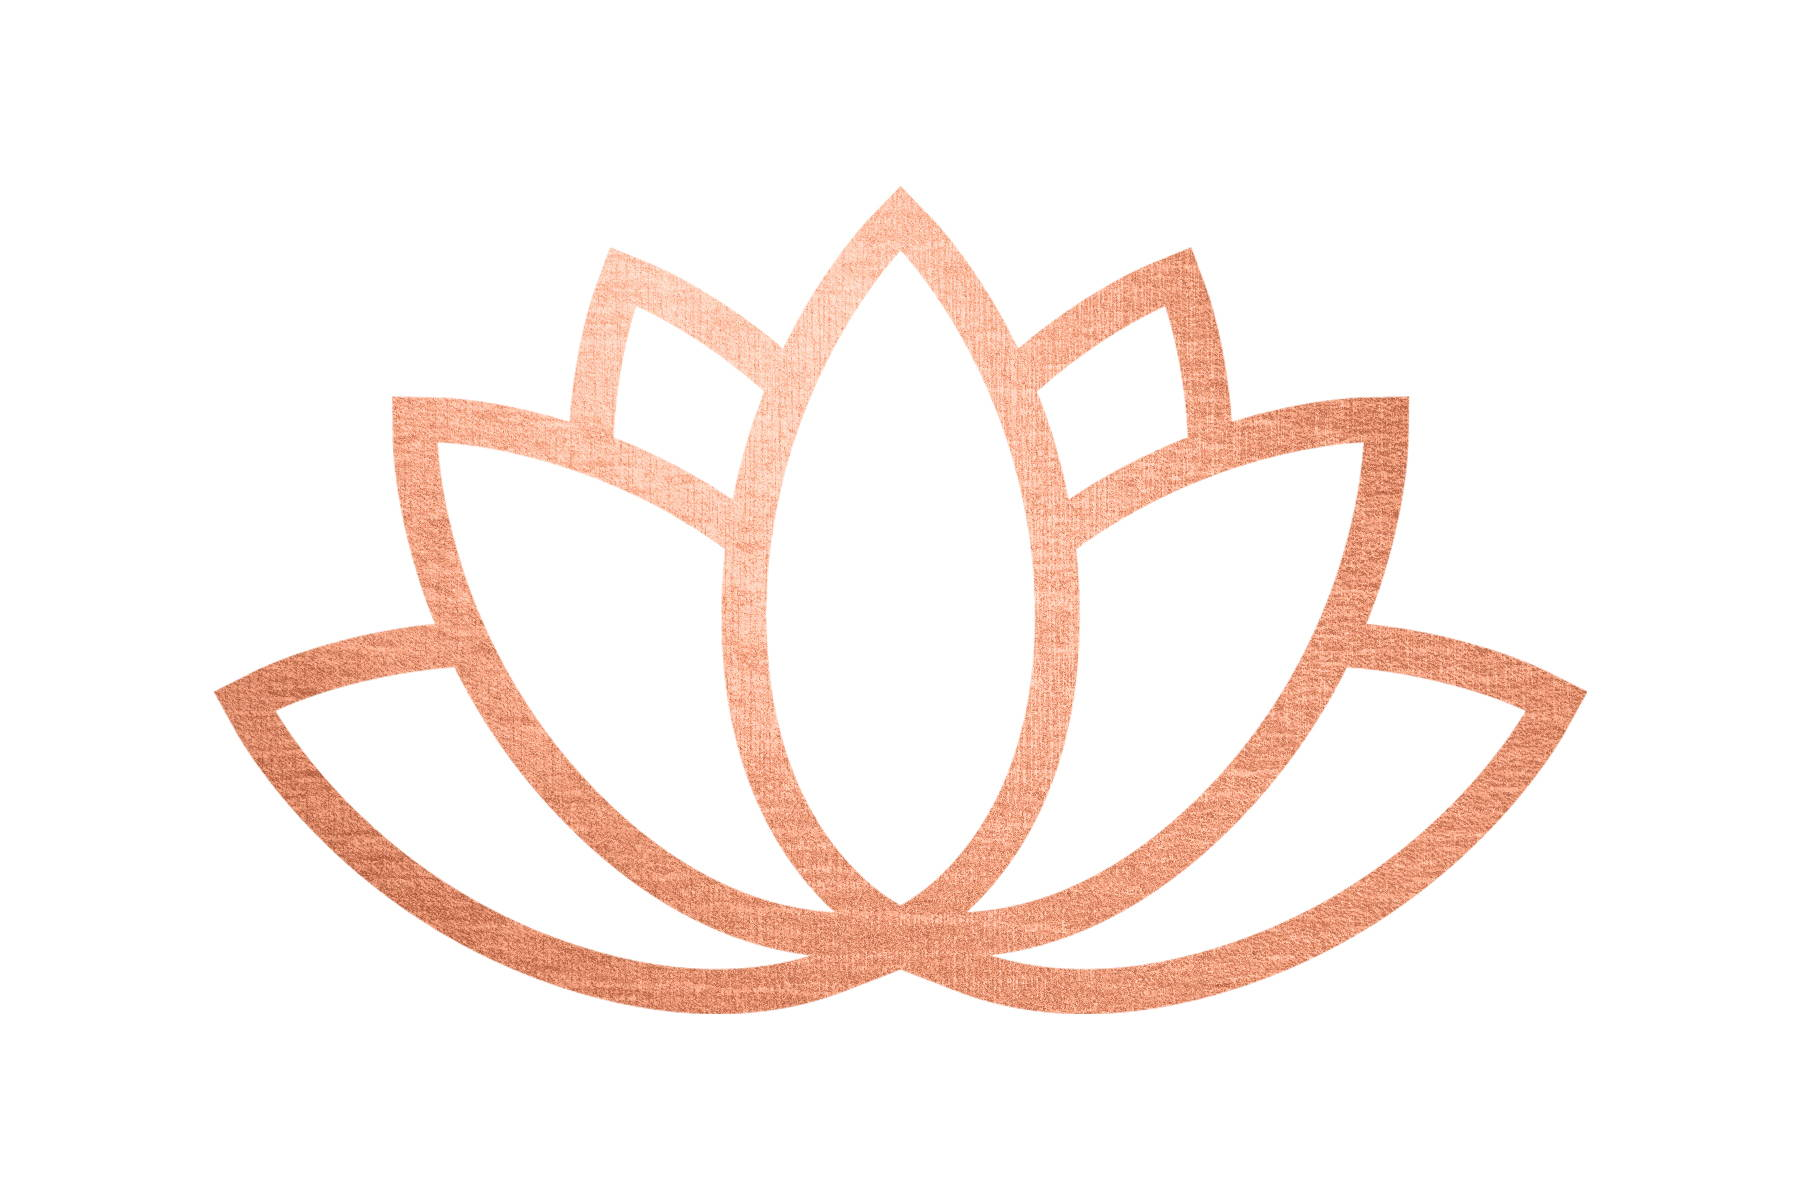 lotus flower Hemsley Organics certified organic vegan cruelty free natural plant-based antioxidants waterless skincare reiki reiki infused cosmetics facial products moisturiser day and night creams highly concentrated wellness wellbeing self care rose water luxury